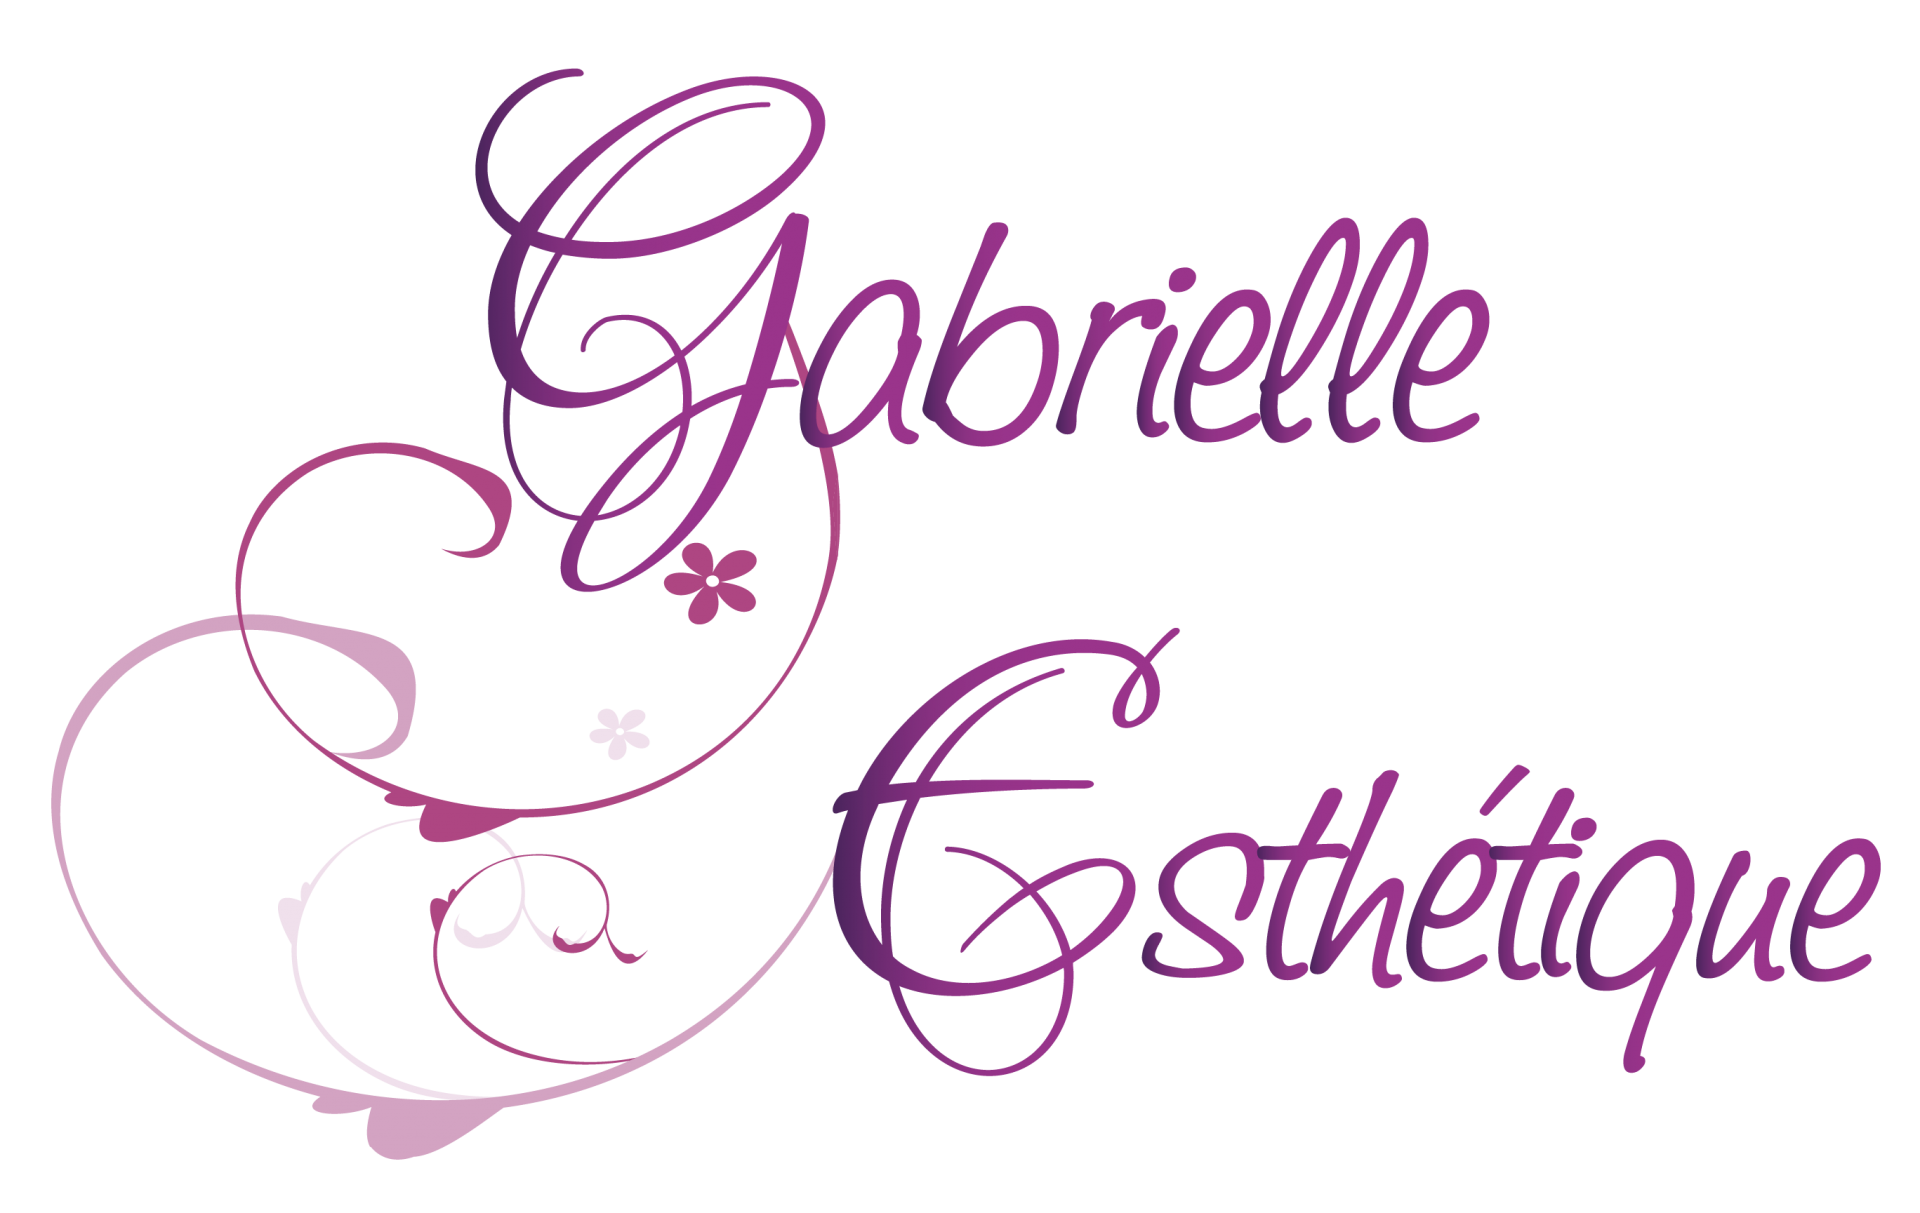 Logo gabrielle esthetique 2